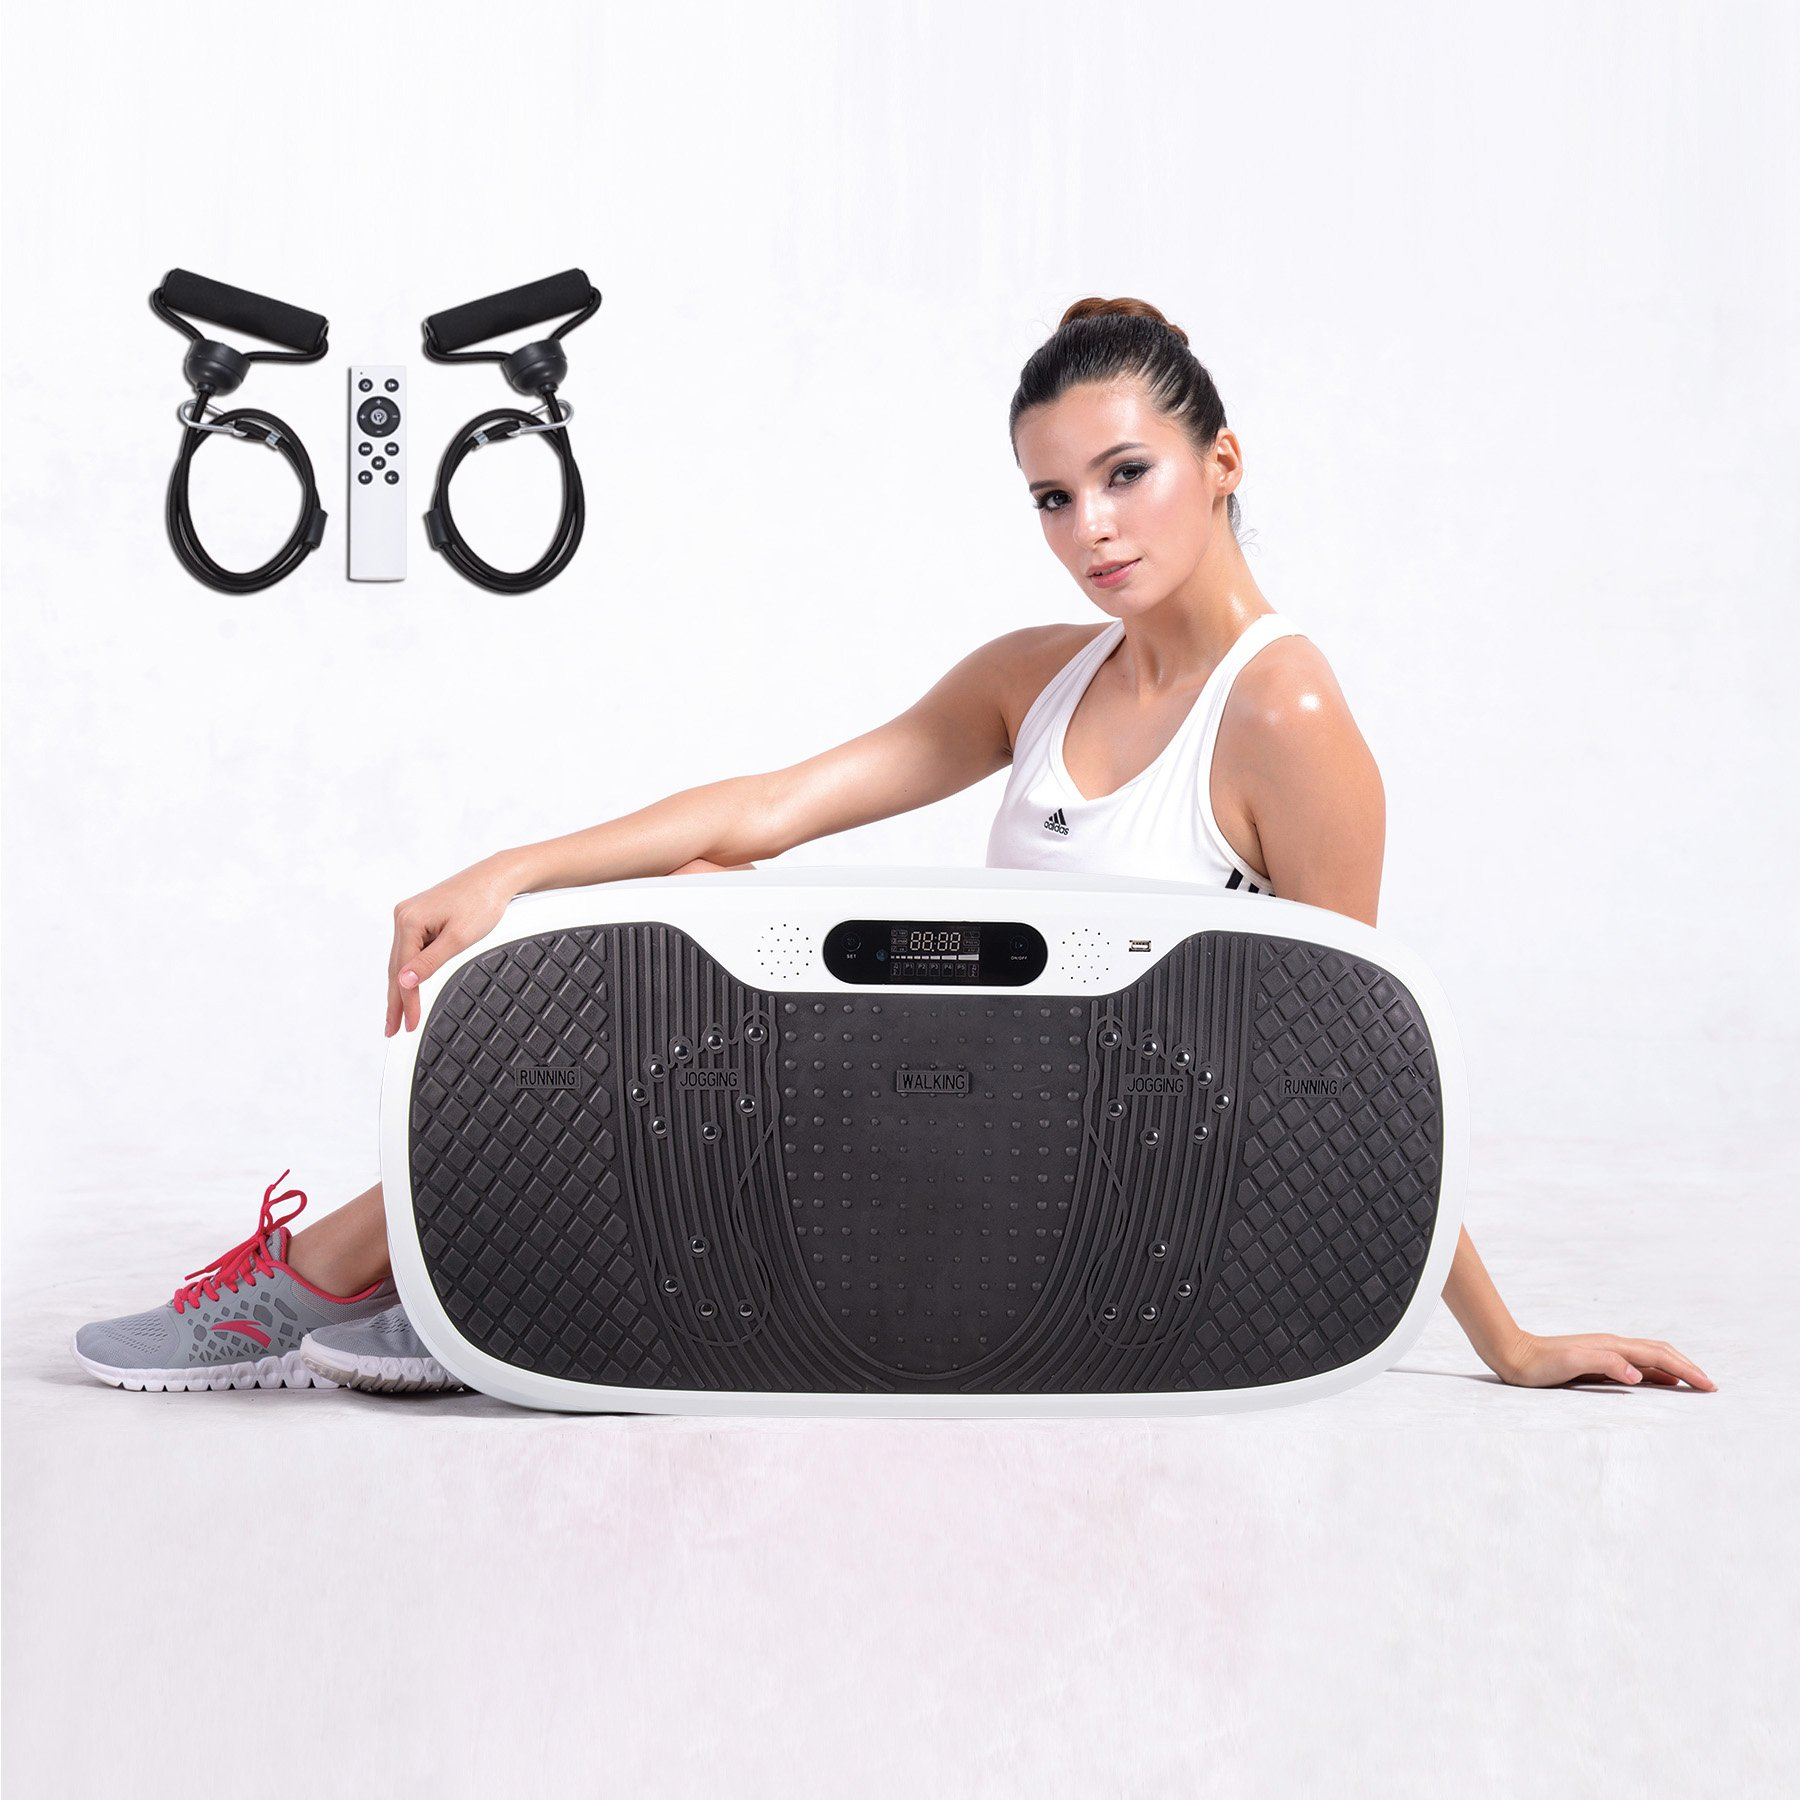 Pinty Full Body Vibration Platform Fitness Vibration Machine with MP3 Player & 3 Standing Positions by Pinty